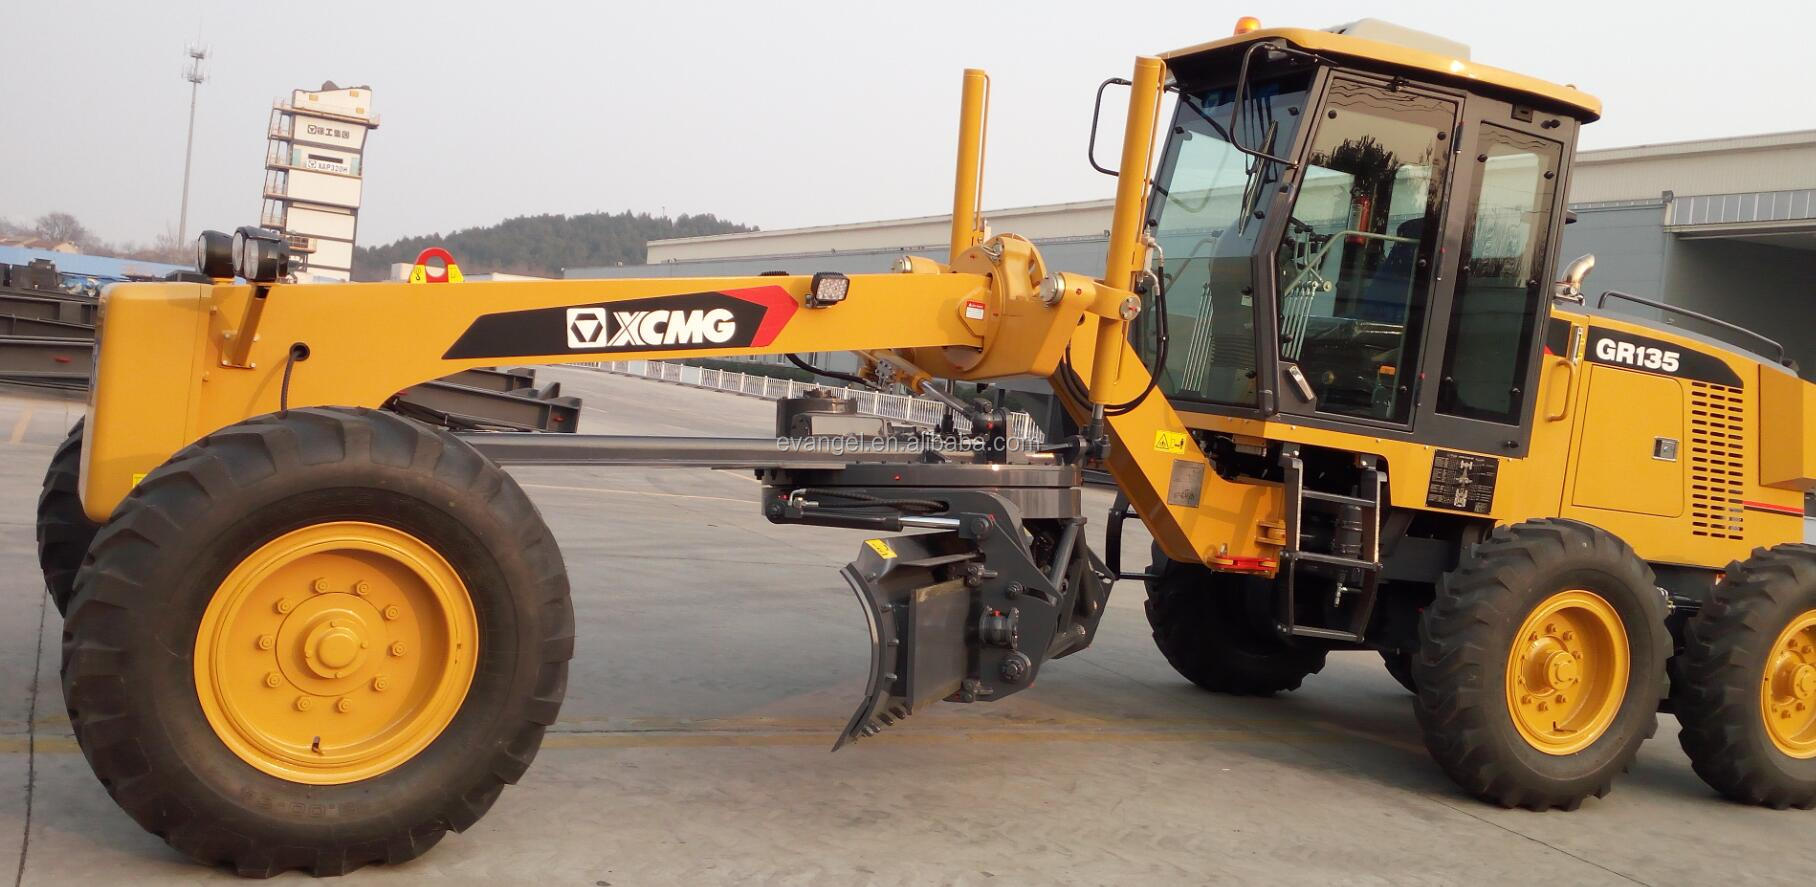 XCMG 135hp  GR135 motor grader with middle front ripper